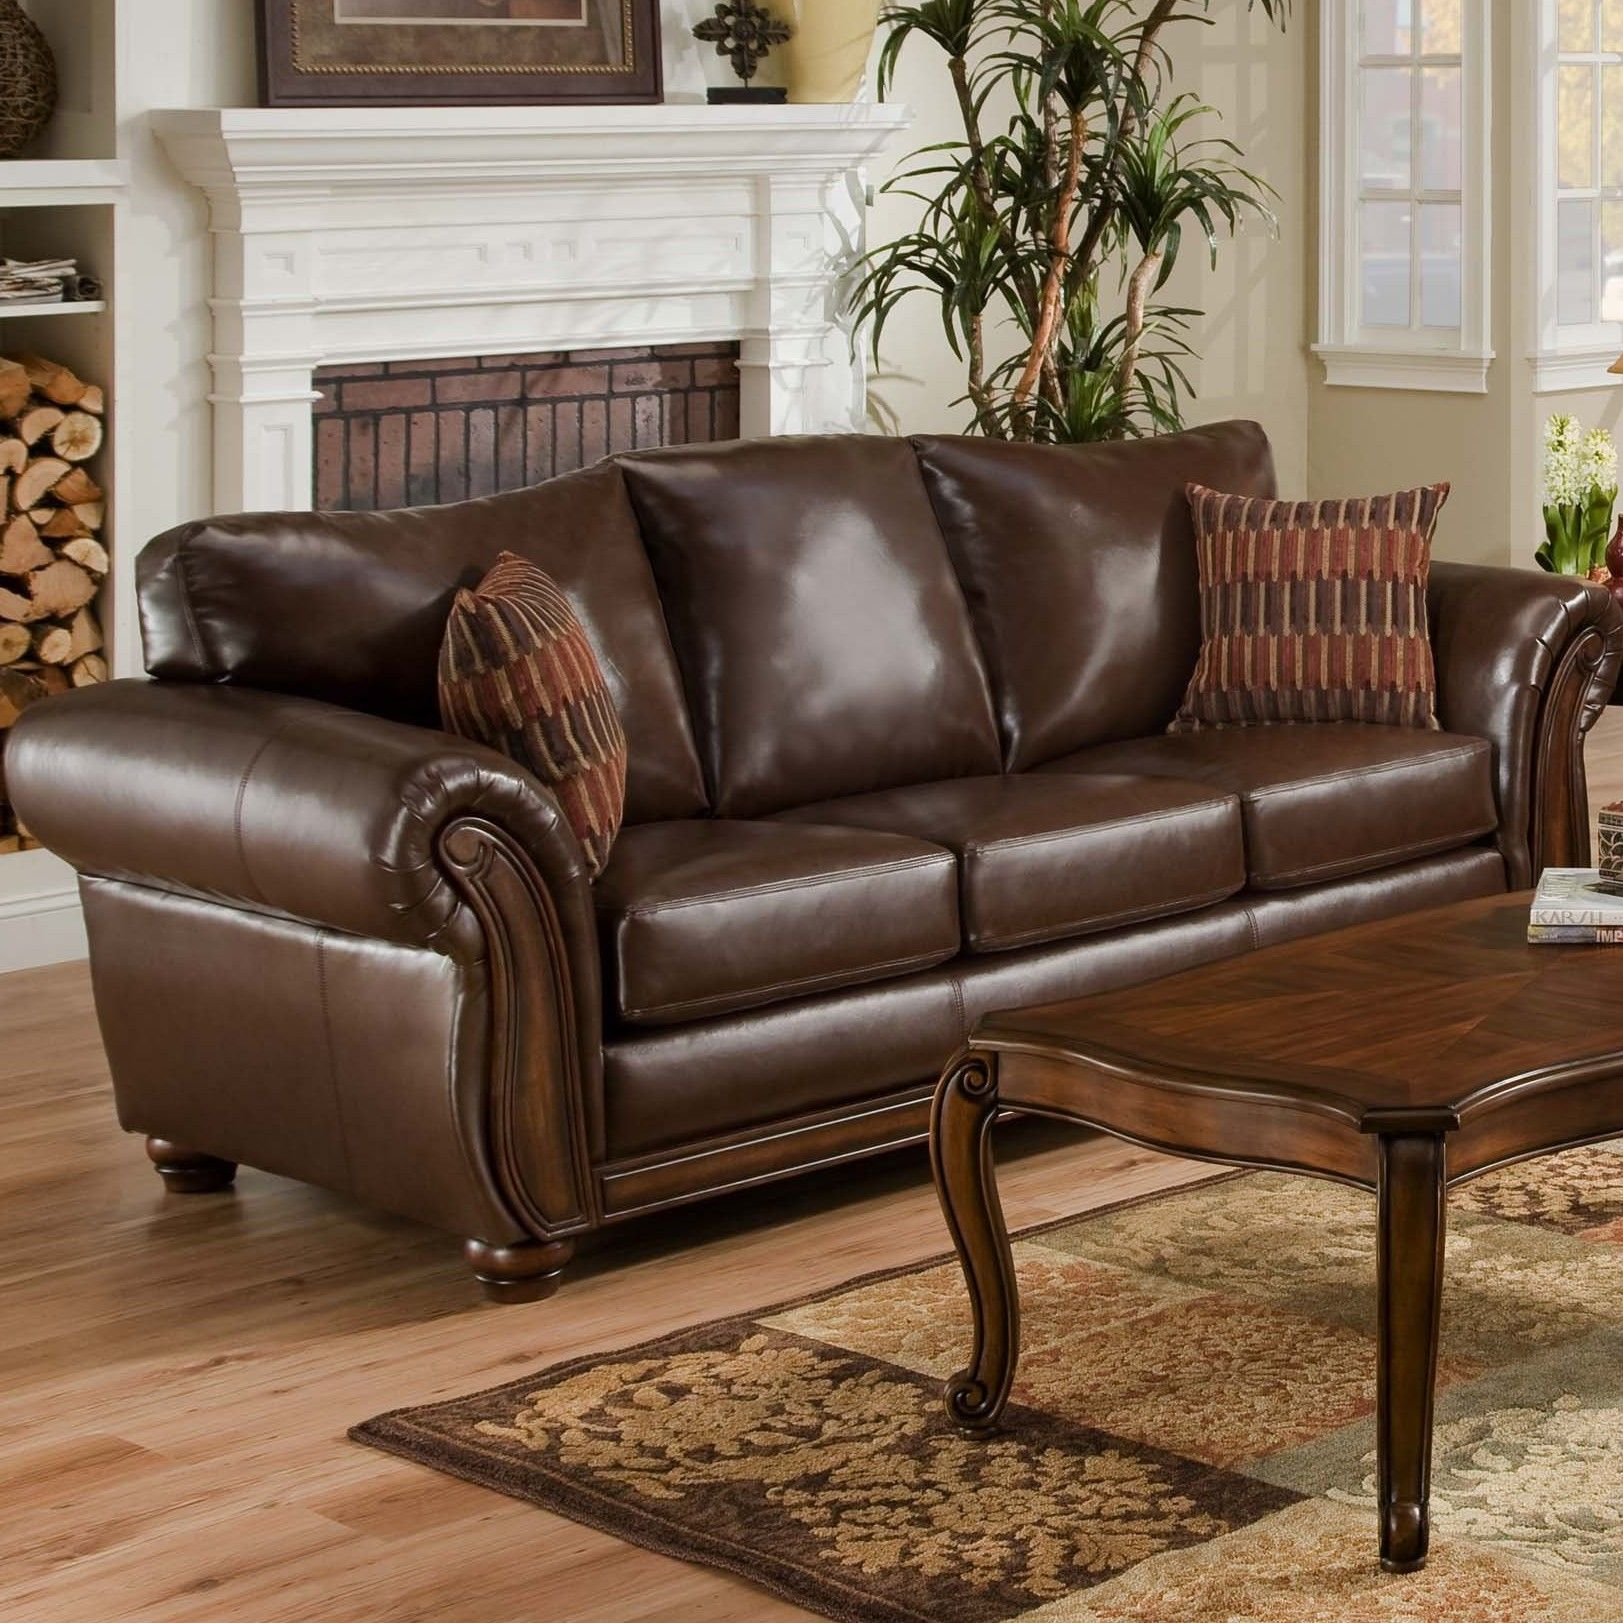 Simmons Upholstery Santa Monica Queen Sleeper Sofa Reviews